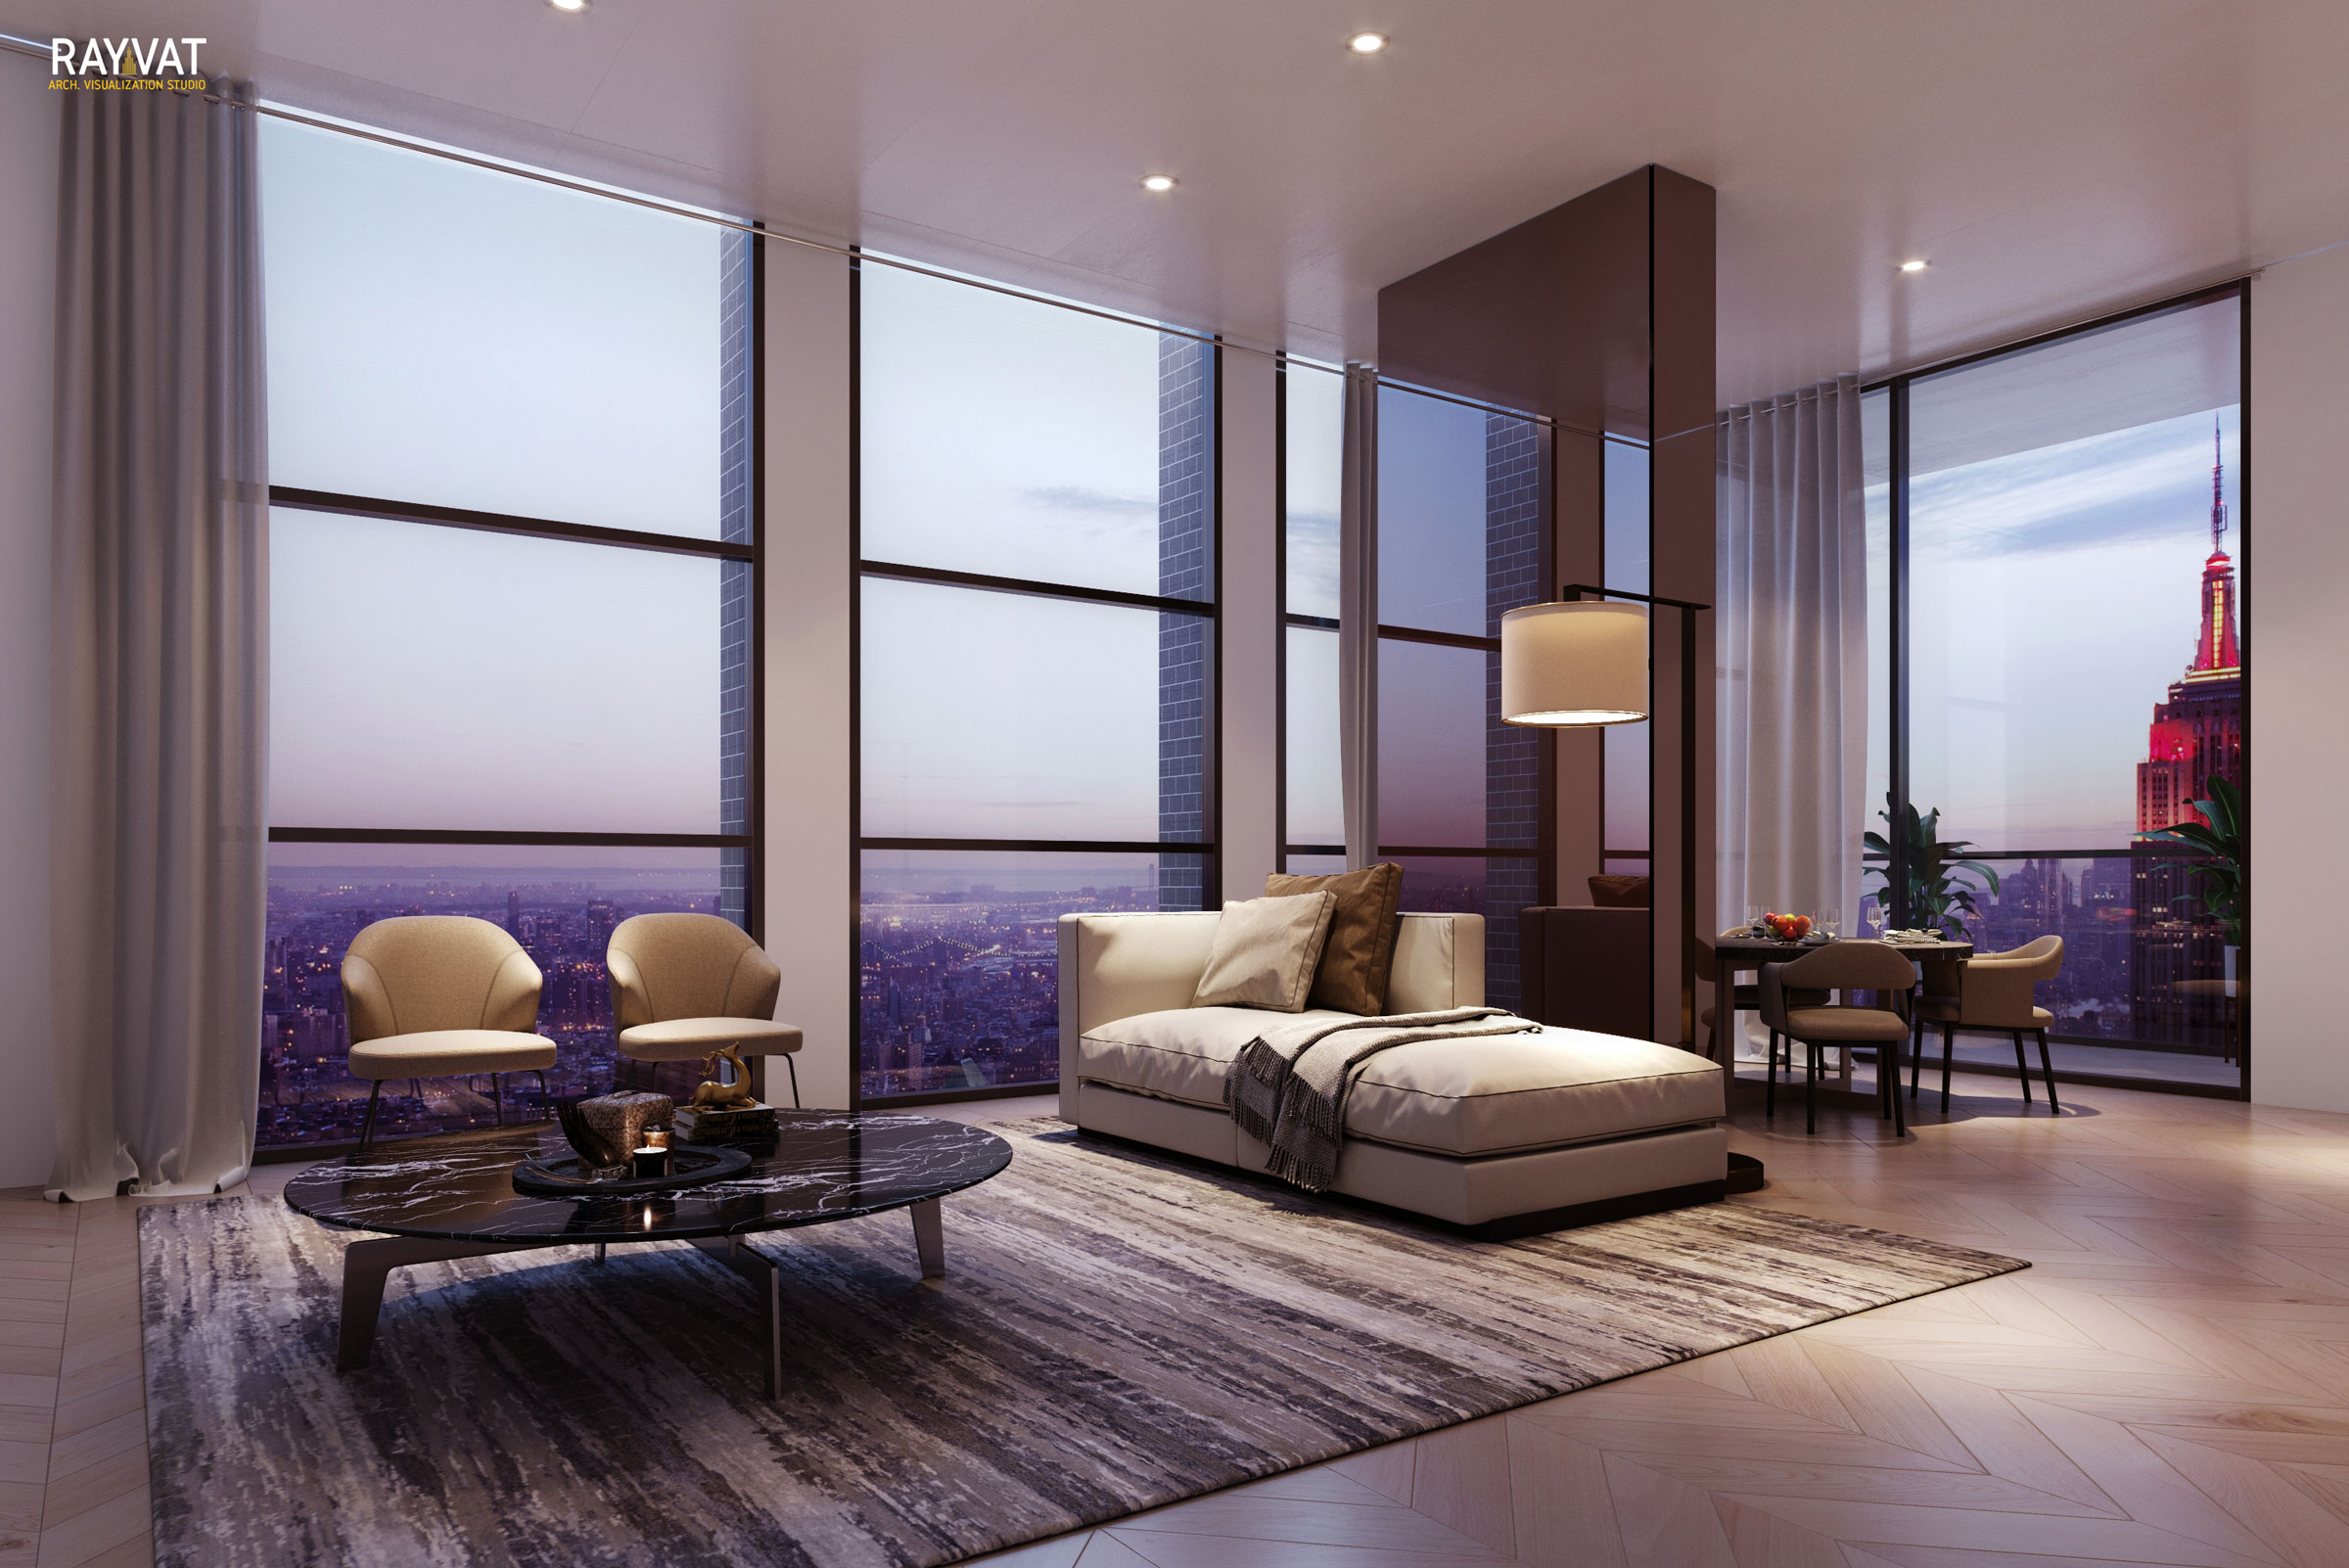 Evening Scene 3D Rendering of Living Room in a high Rise Tower, Chicago